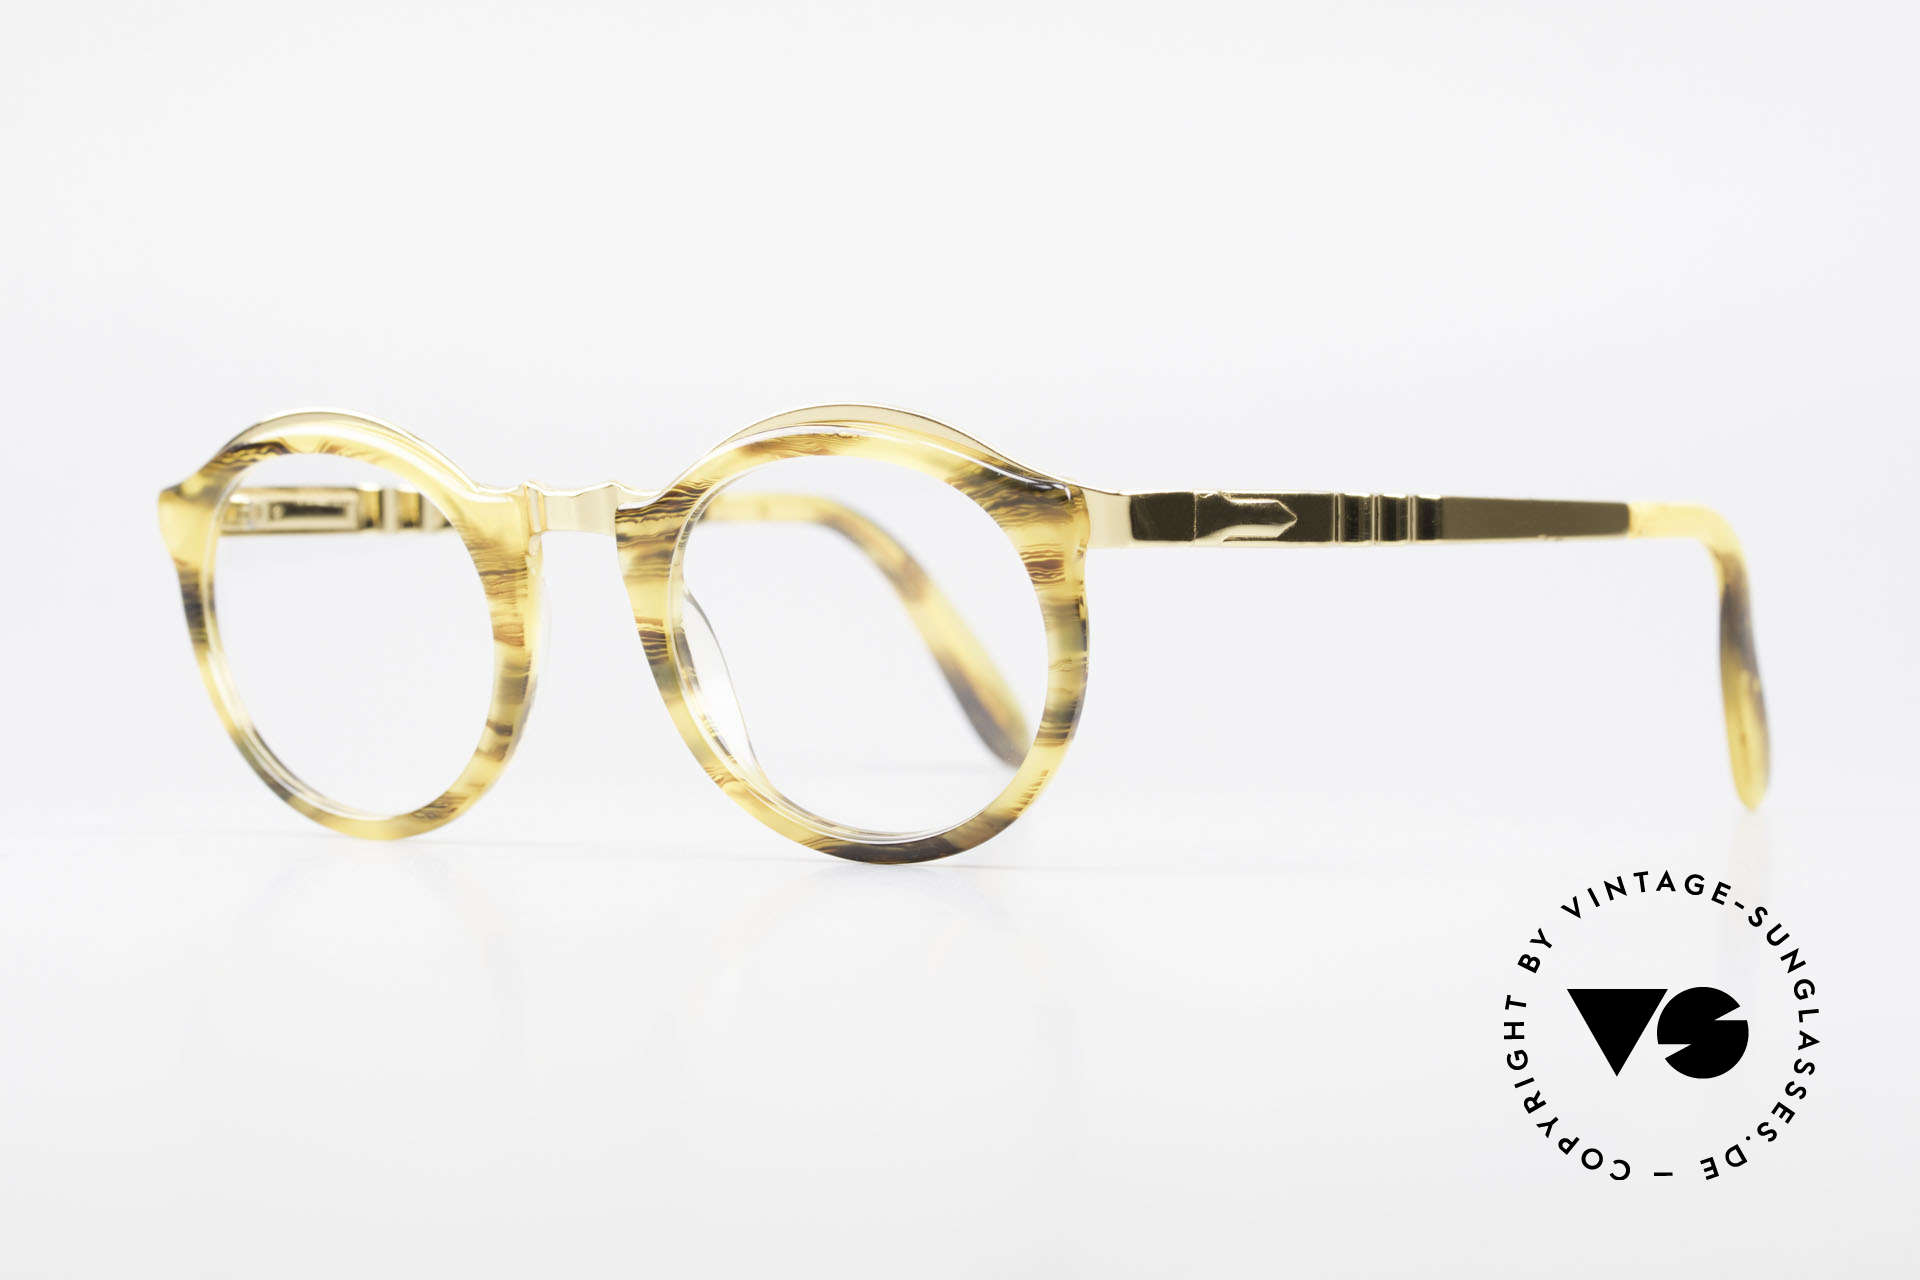 Persol Ivy Gold Plated Panto Glasses, a timeless piece with a terrific frame pattern, Made for Men and Women